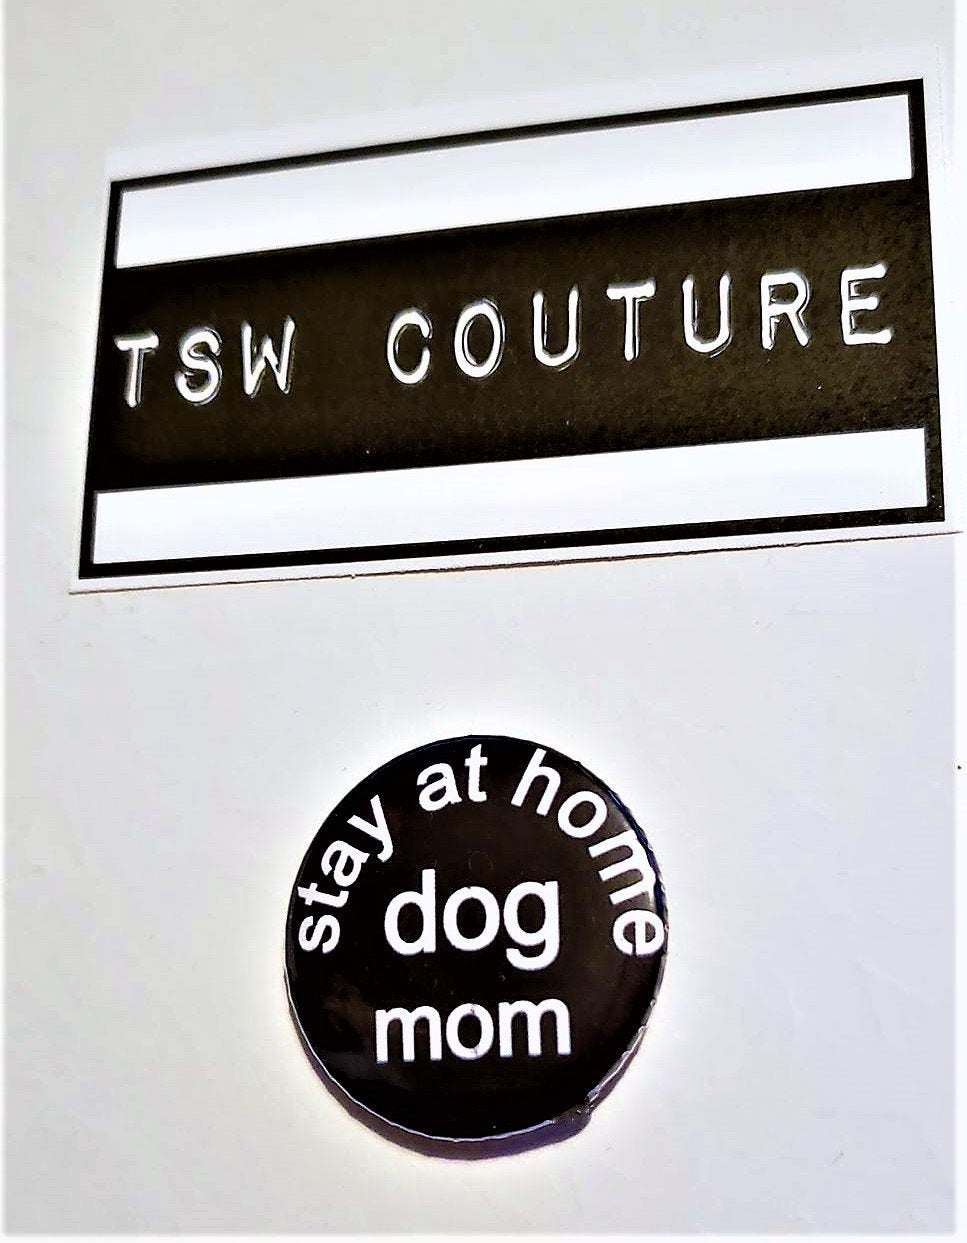 Stay at Home DOG MOM PIN Button 1.5